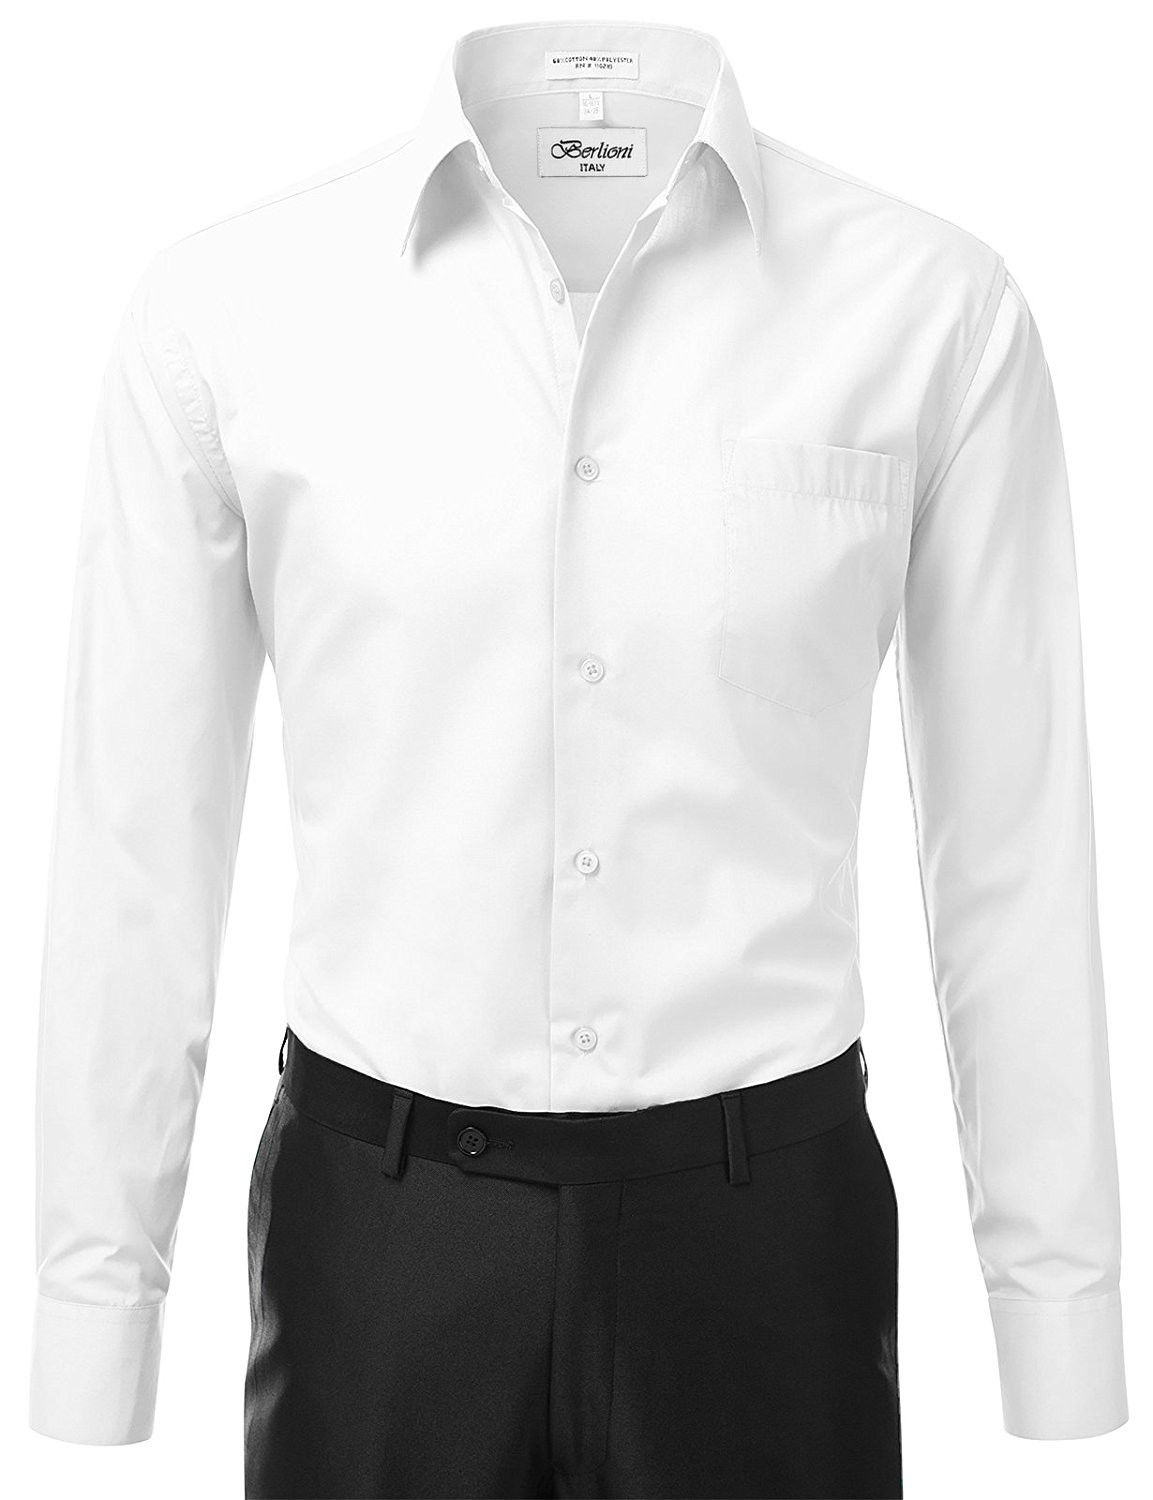 Berlioni-Italy-Men-039-s-Premium-Classic-French-Convertible-Cuff-Solid-Dress-Shirt thumbnail 68